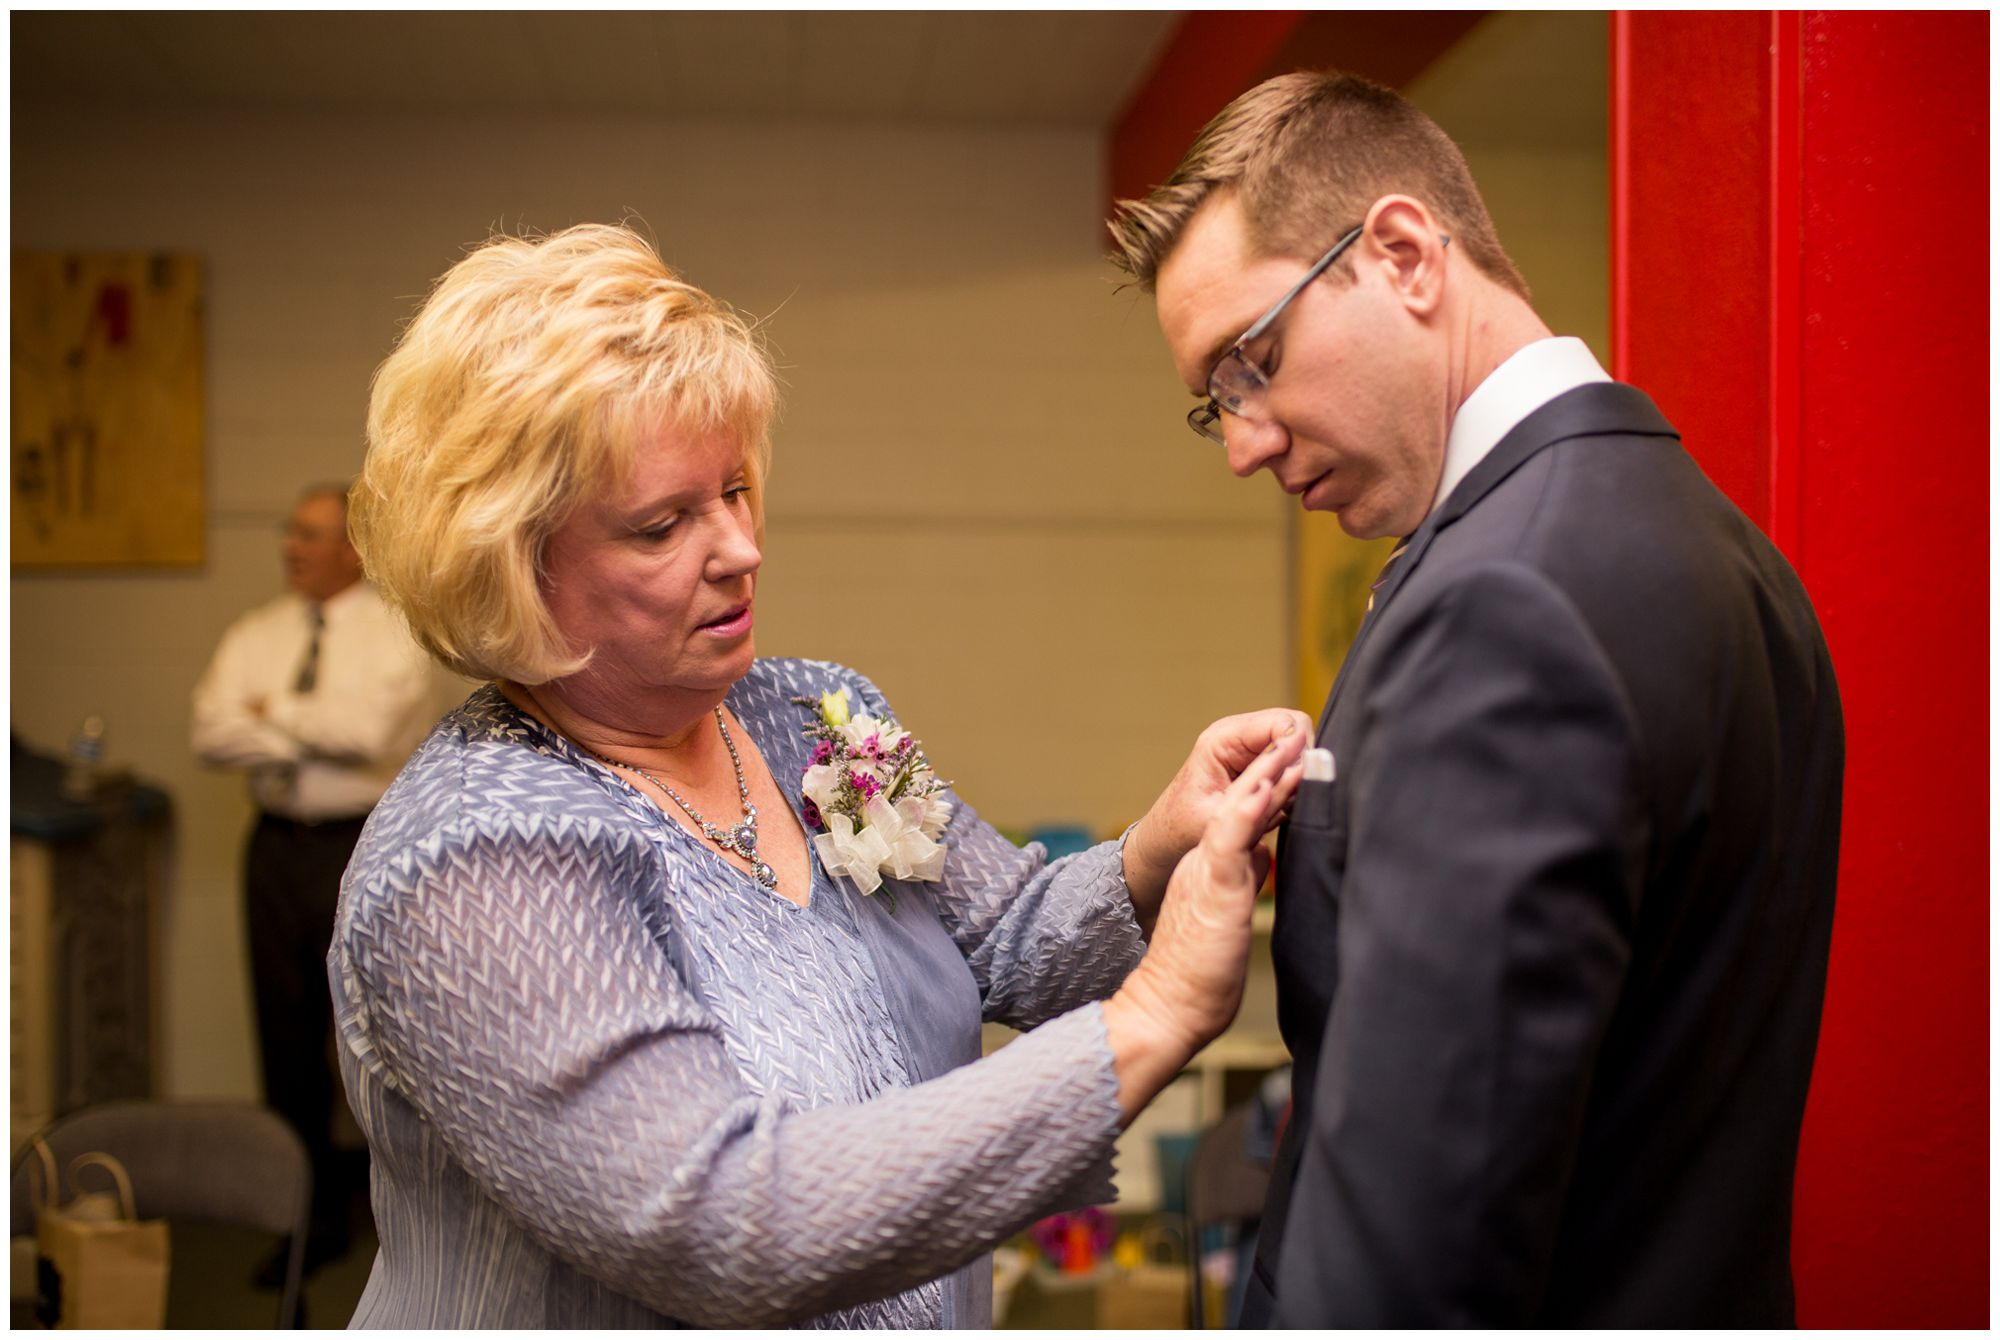 mother of groom pinning boutonniere on groom before wedding at Redeemer Presbyterian Church Indianapolis